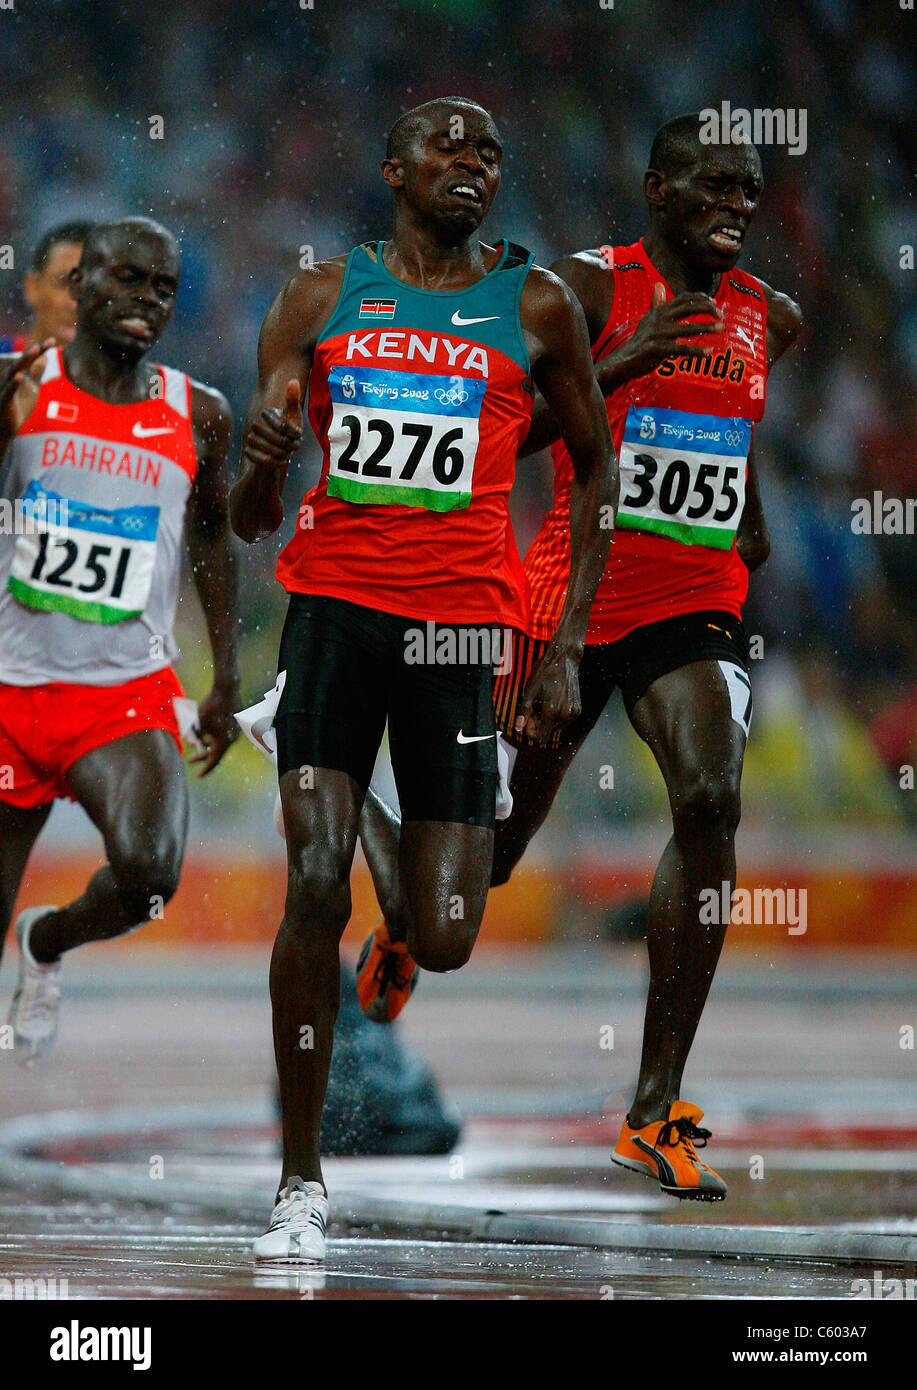 BOAZ-KIPLAGAT LALANG KENYA OLYMPIC STADIUM BEIJING CHINA 21 August 2008 - Stock Image